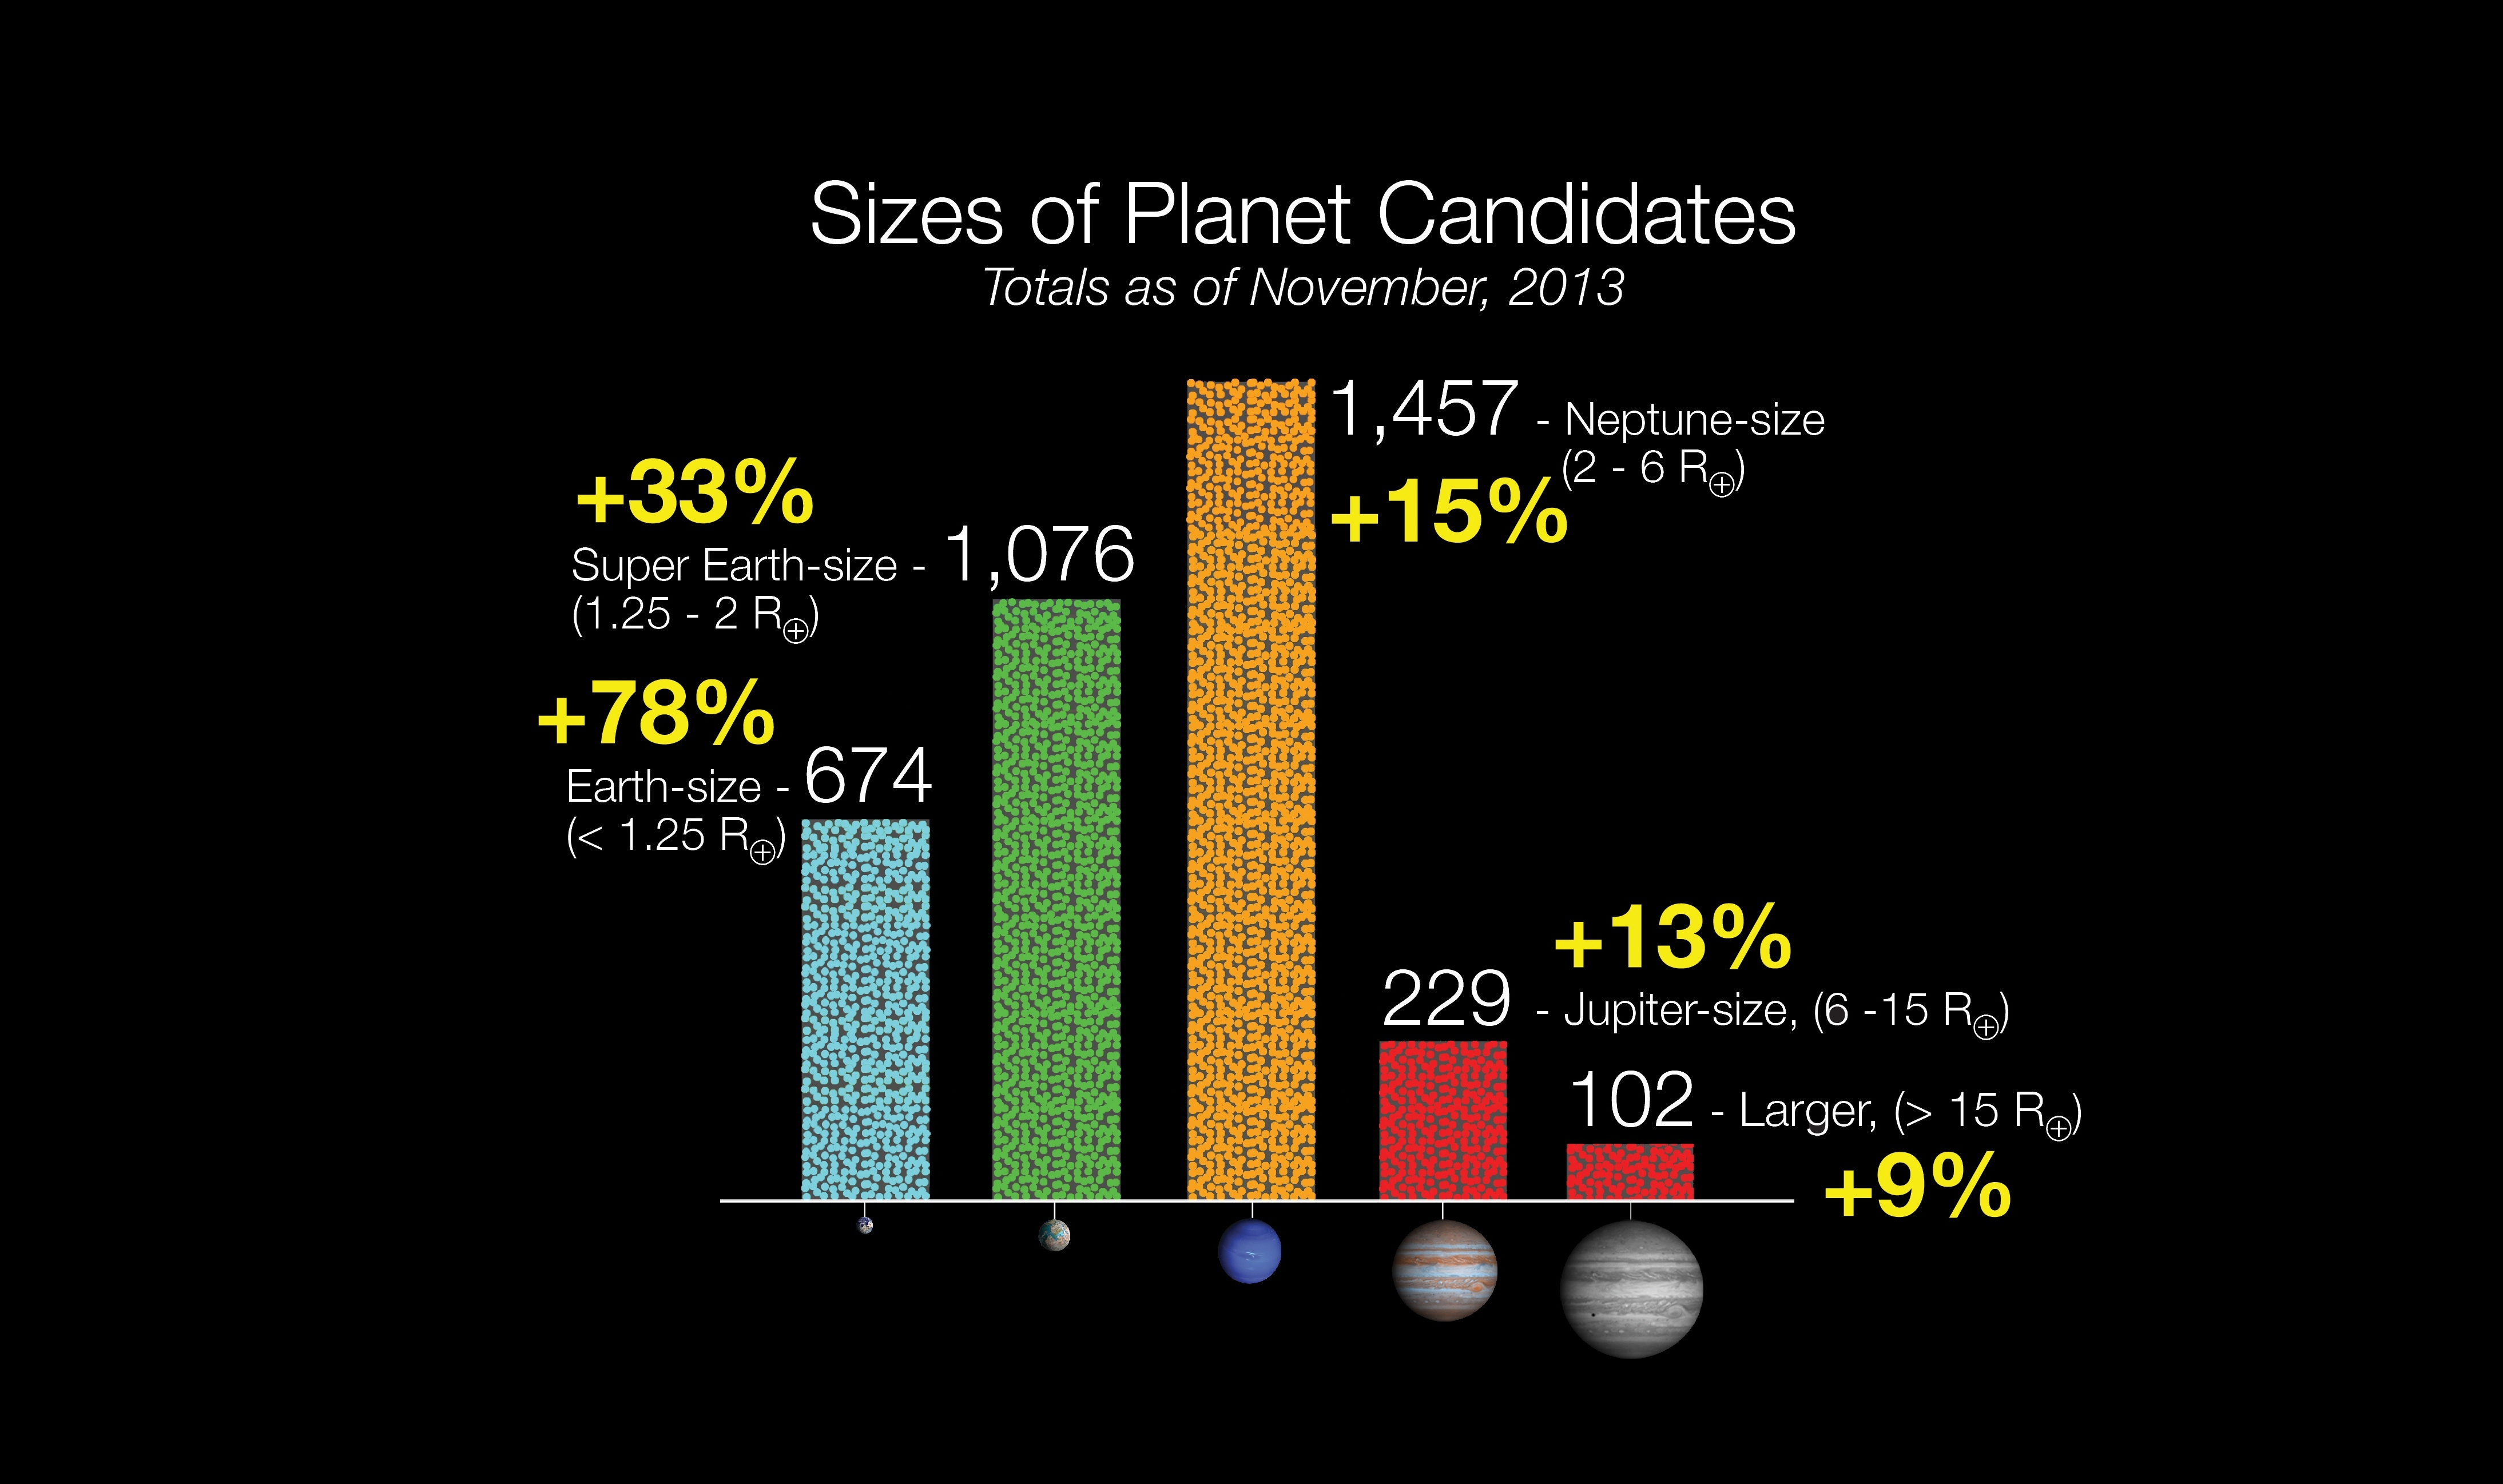 Universe Likely Contains Billions Of Earth-Like Planets